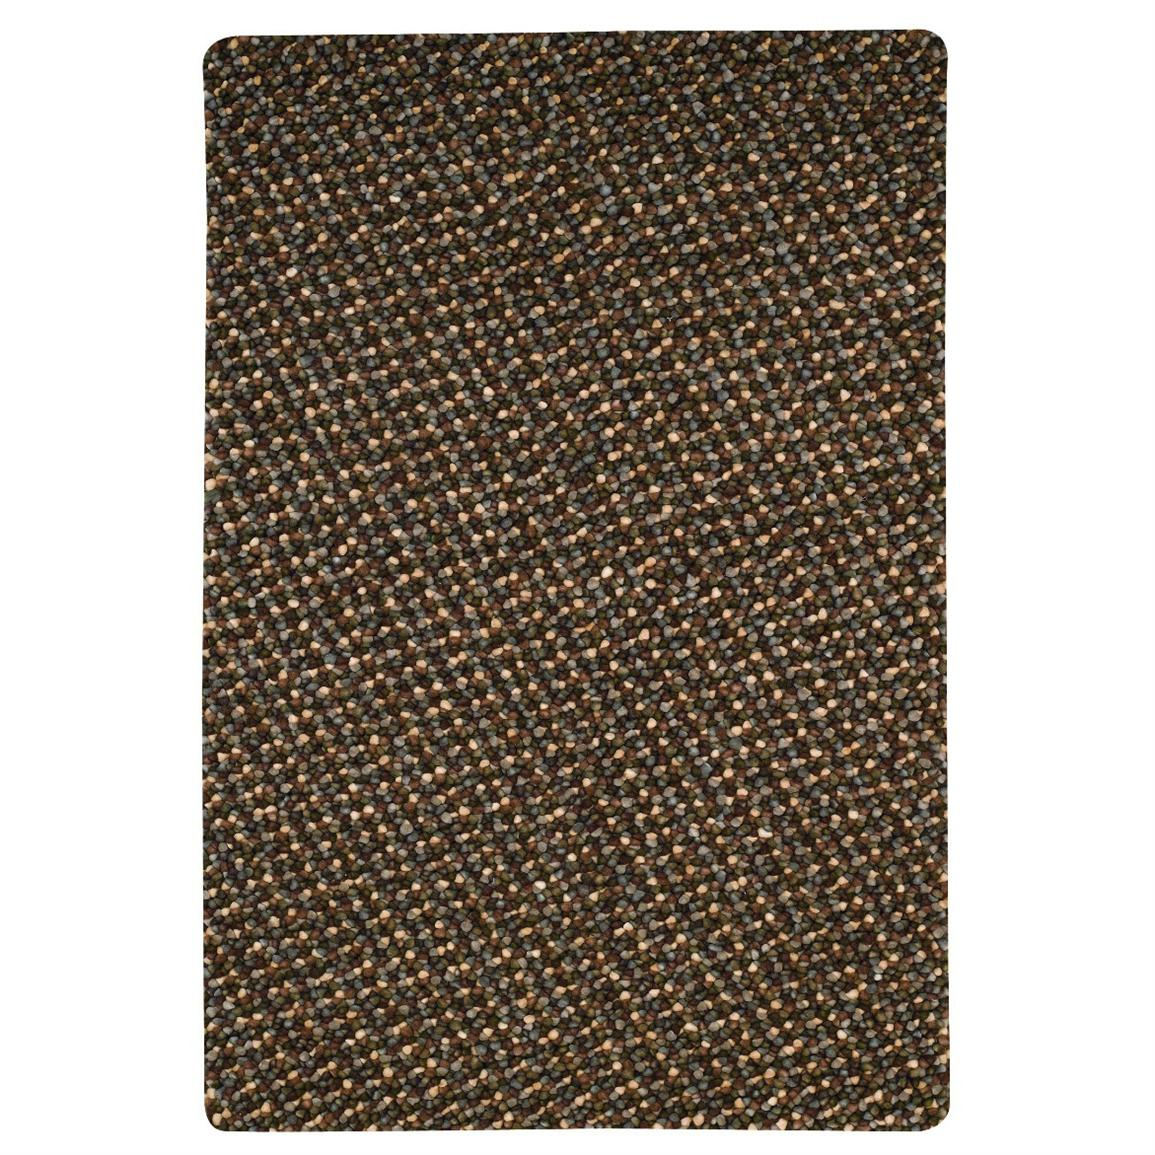 Capel Pebbles Pewter Rug